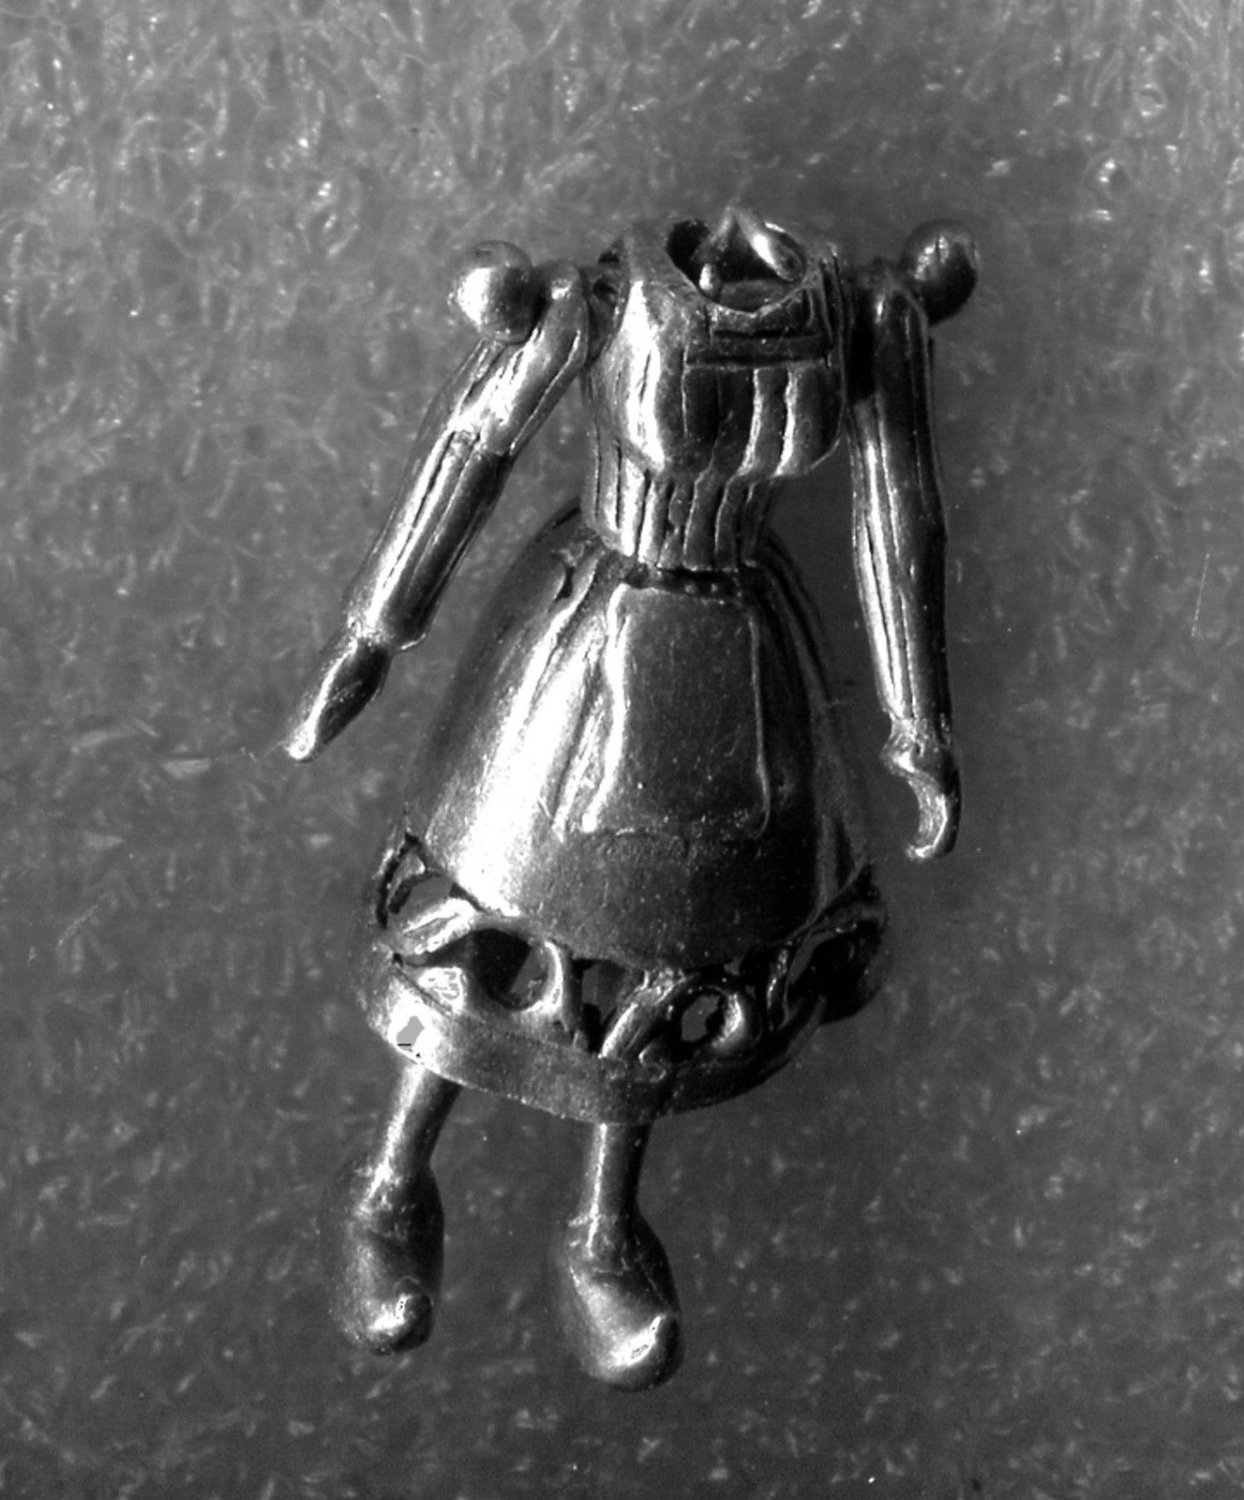 Vintage Silver Headless Articulated Girl or Woman Charm